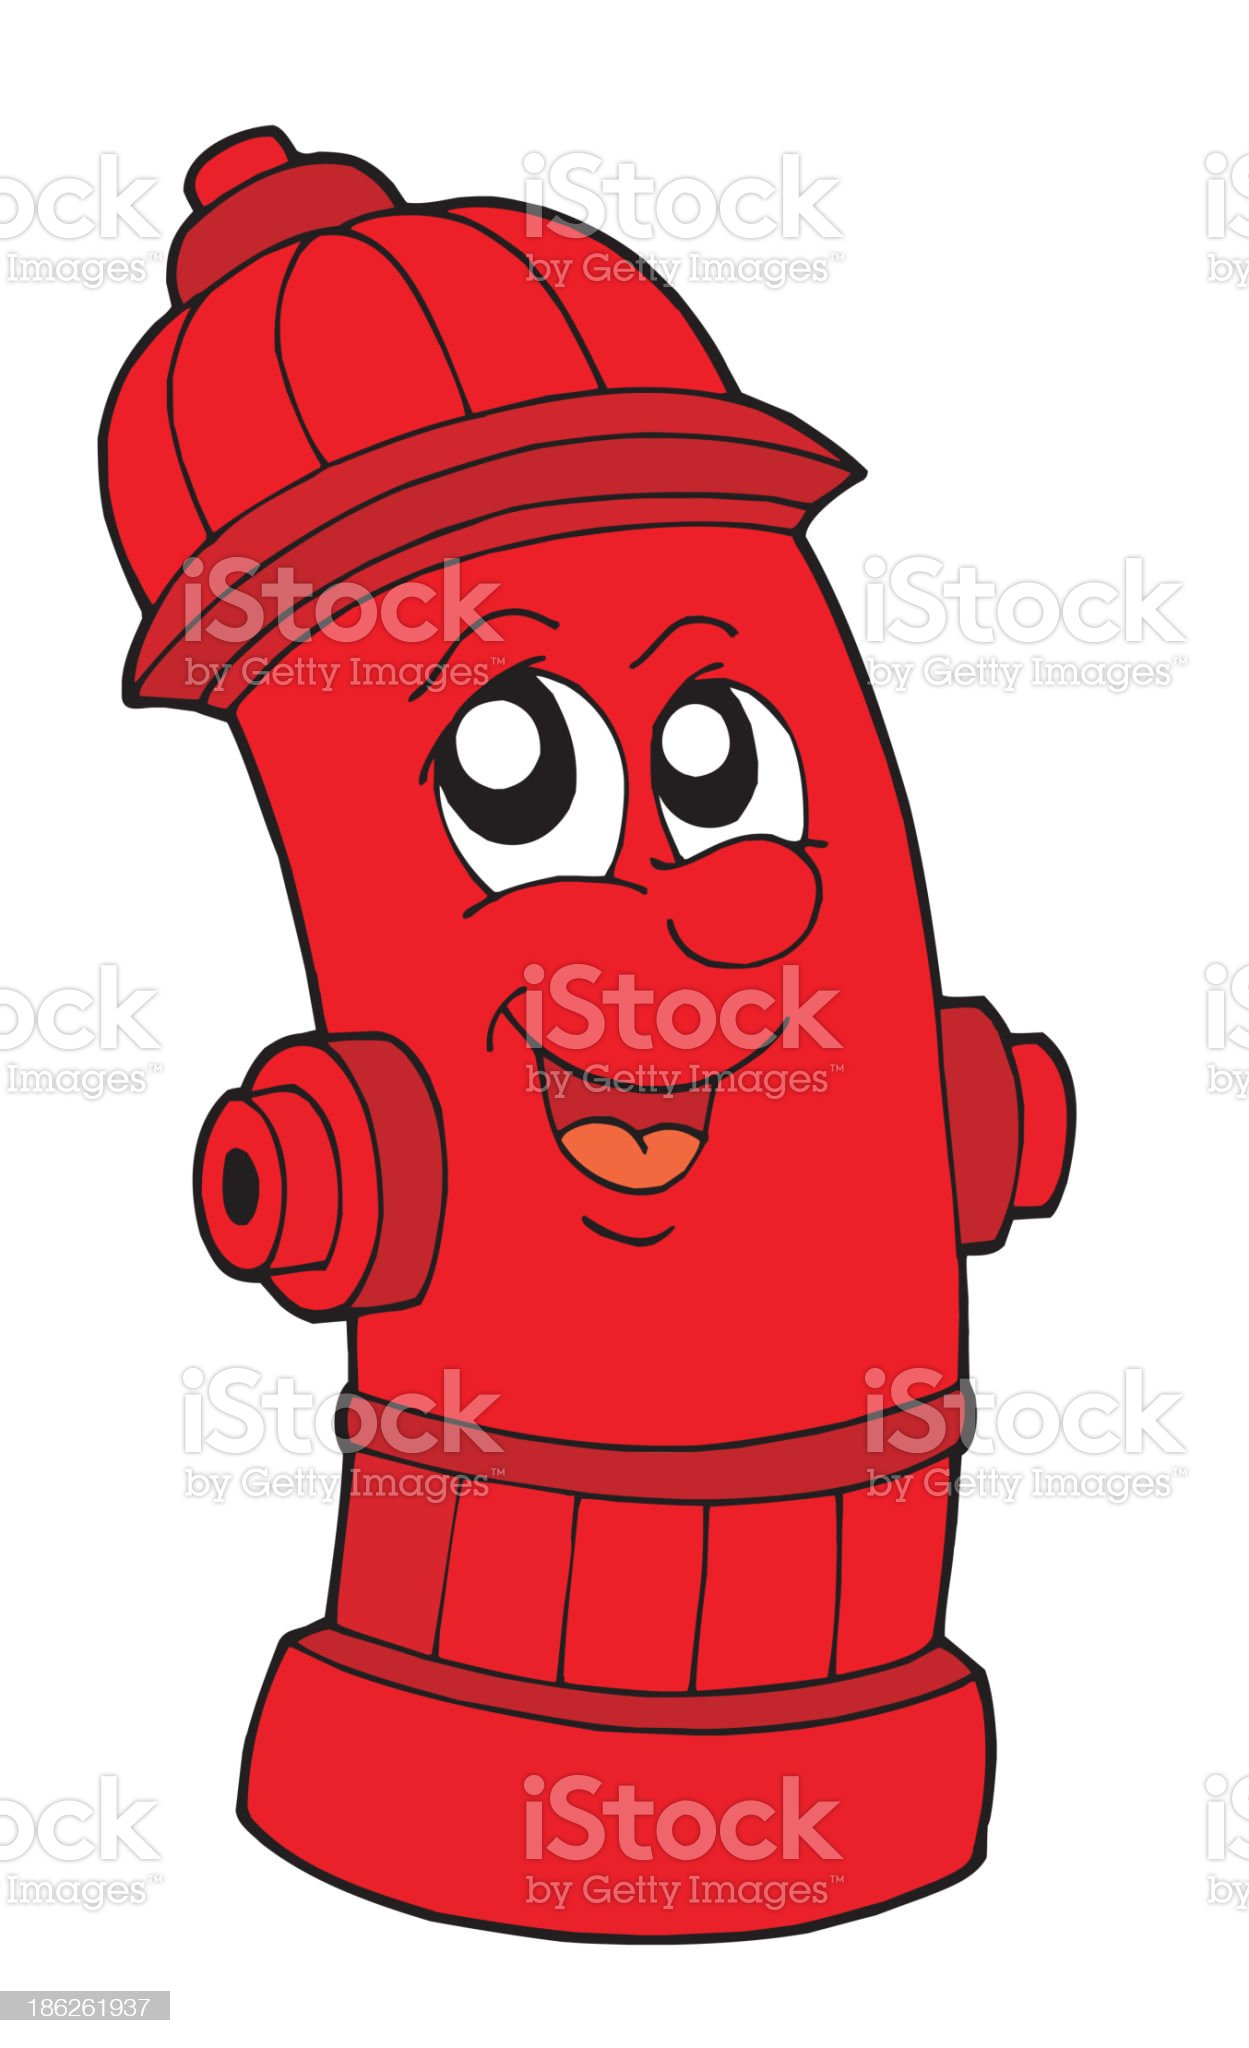 Cute red fire hydrant royalty-free stock vector art